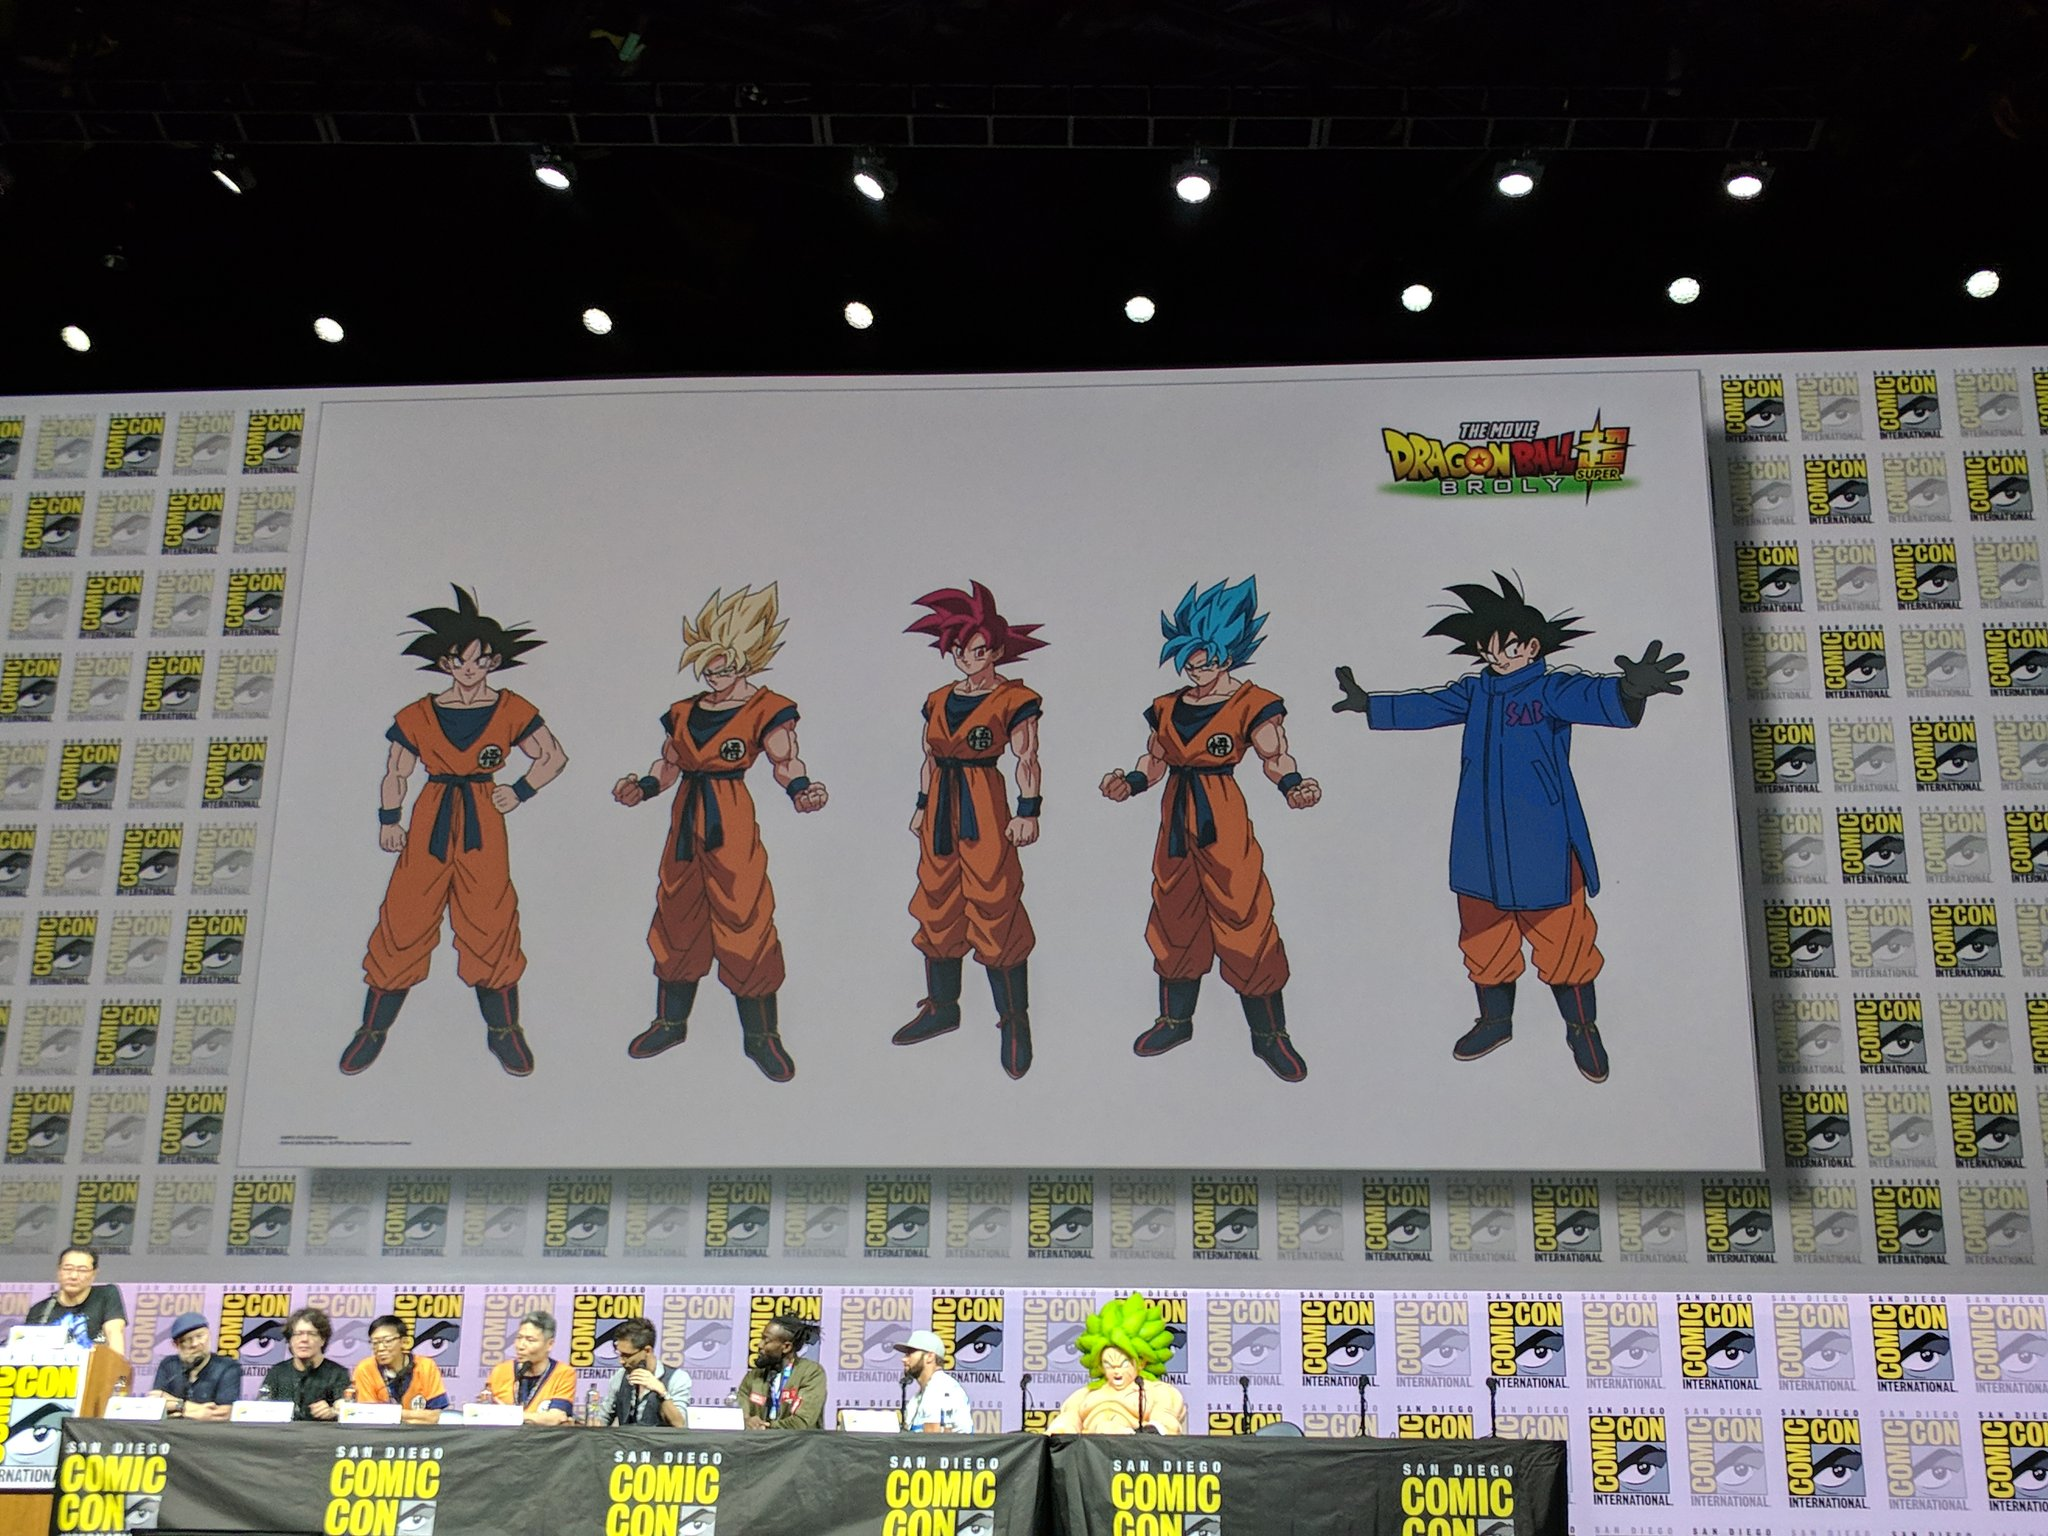 Dragon Ball Super Broly Movie Showcases Character Forms At Sdcc